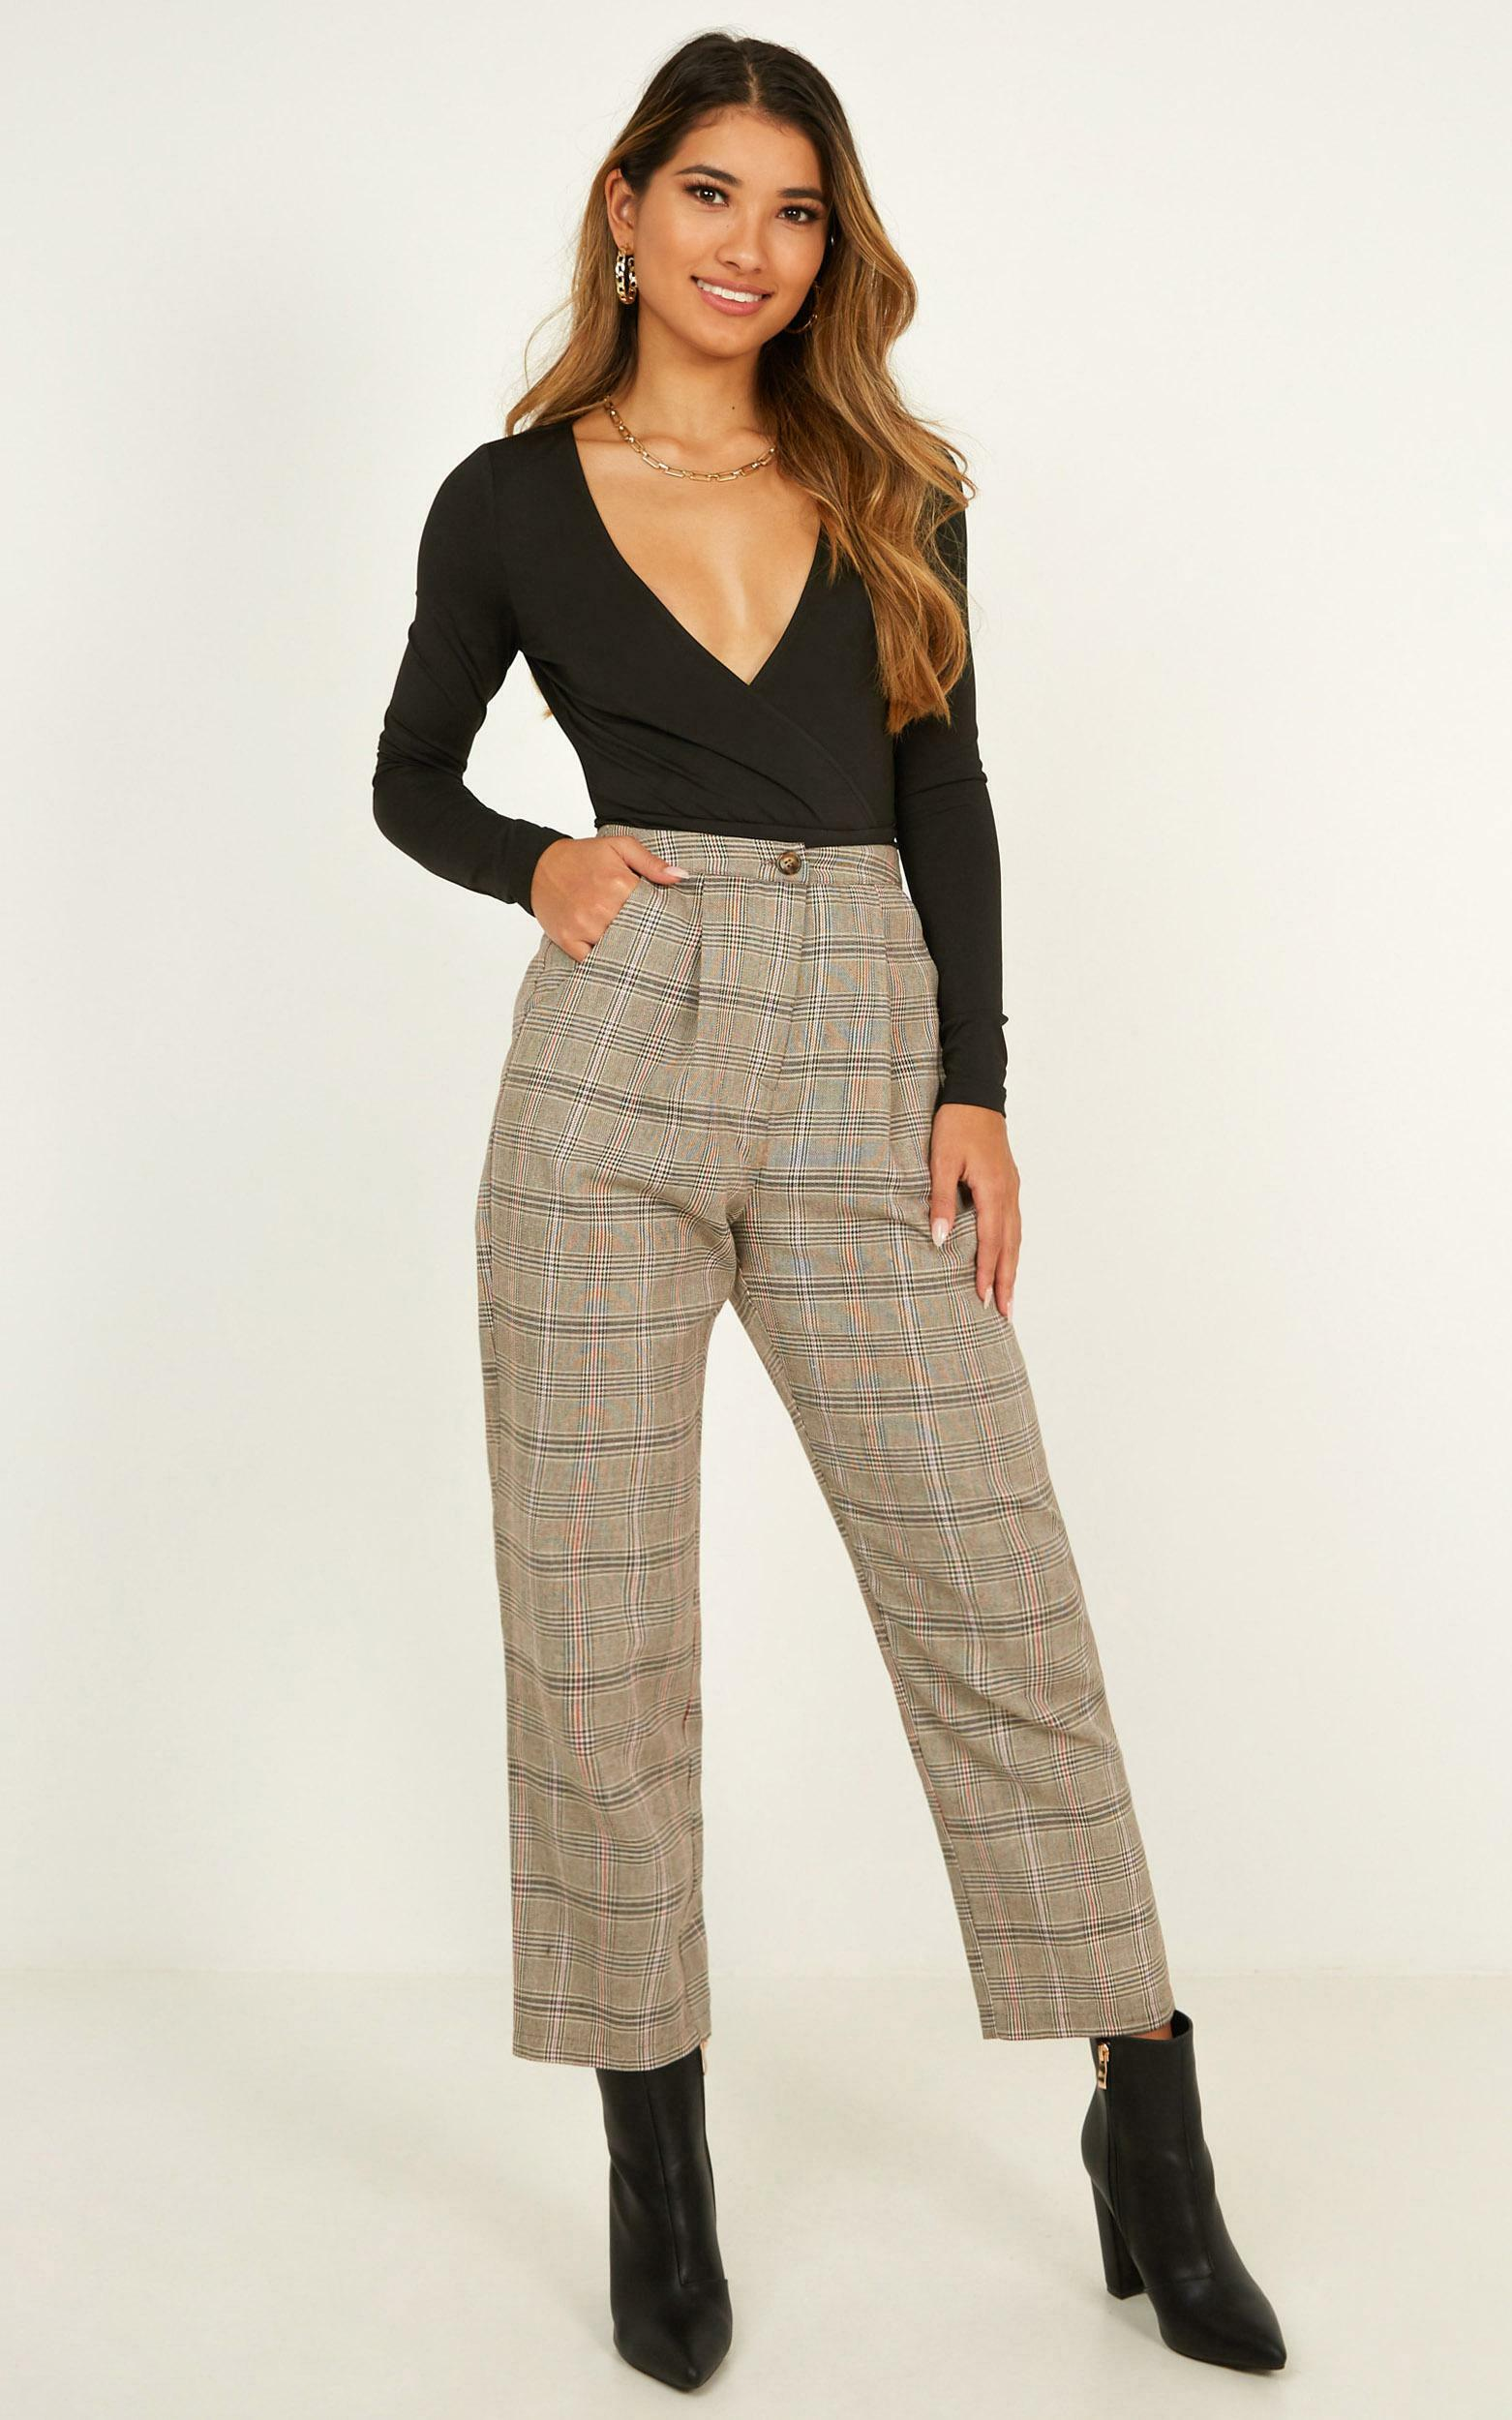 Alpine Pants In chocolate check - 8 (S), Brown, hi-res image number null